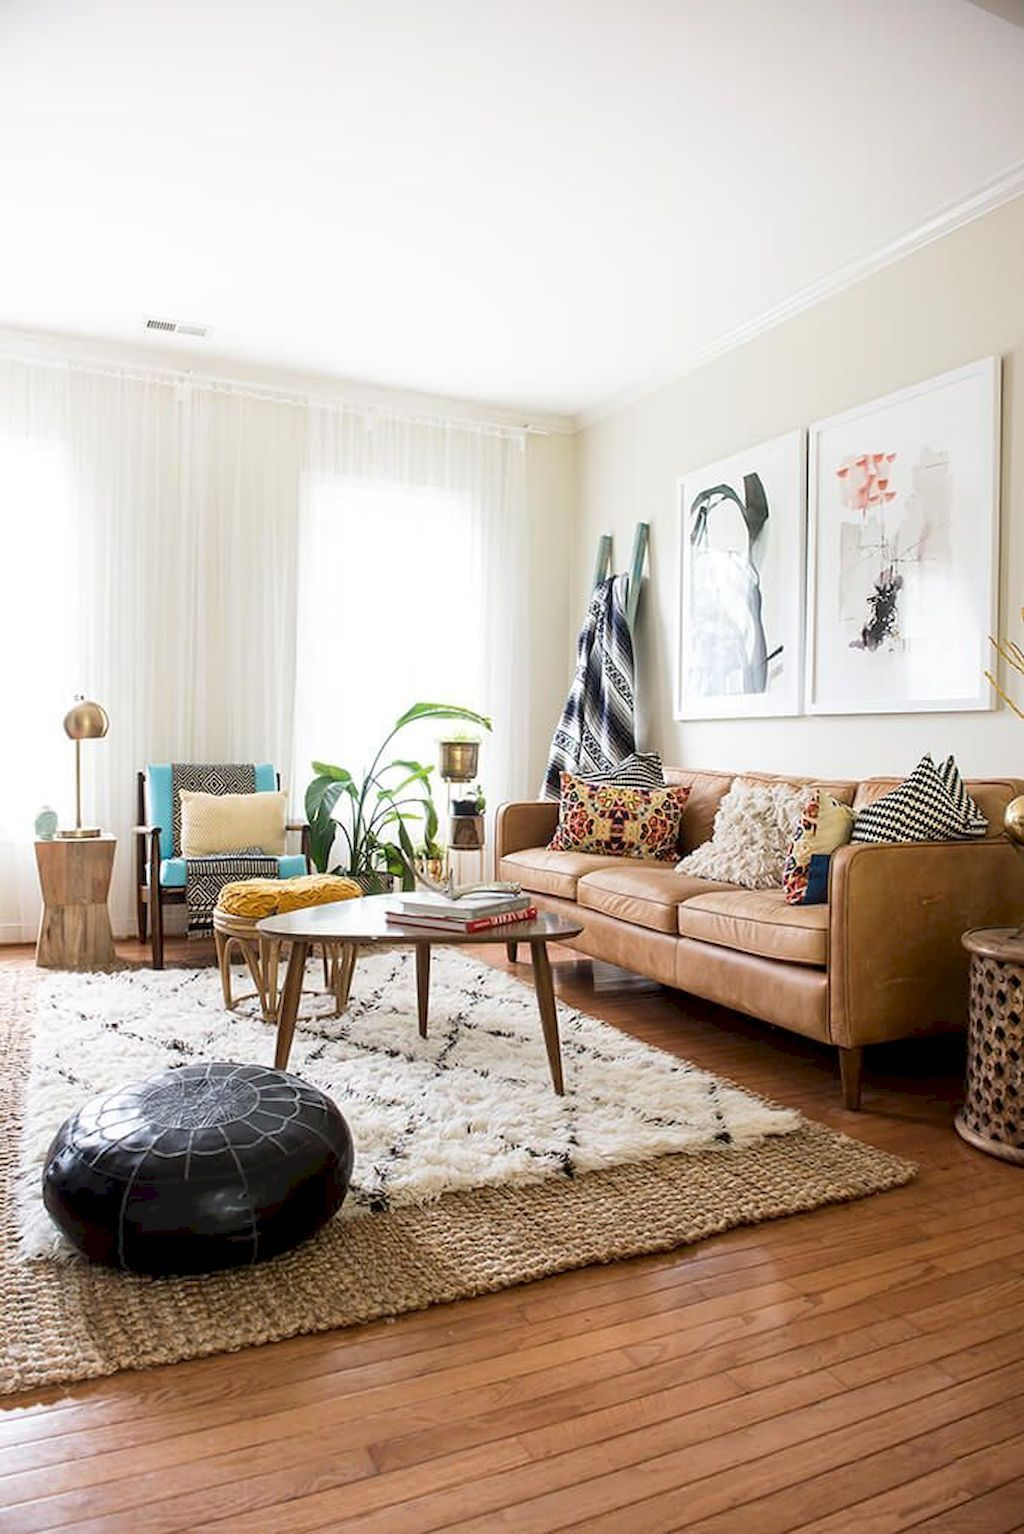 50 Cozy and Beauty Bohemian Living Room Design Ideas | cslr ...